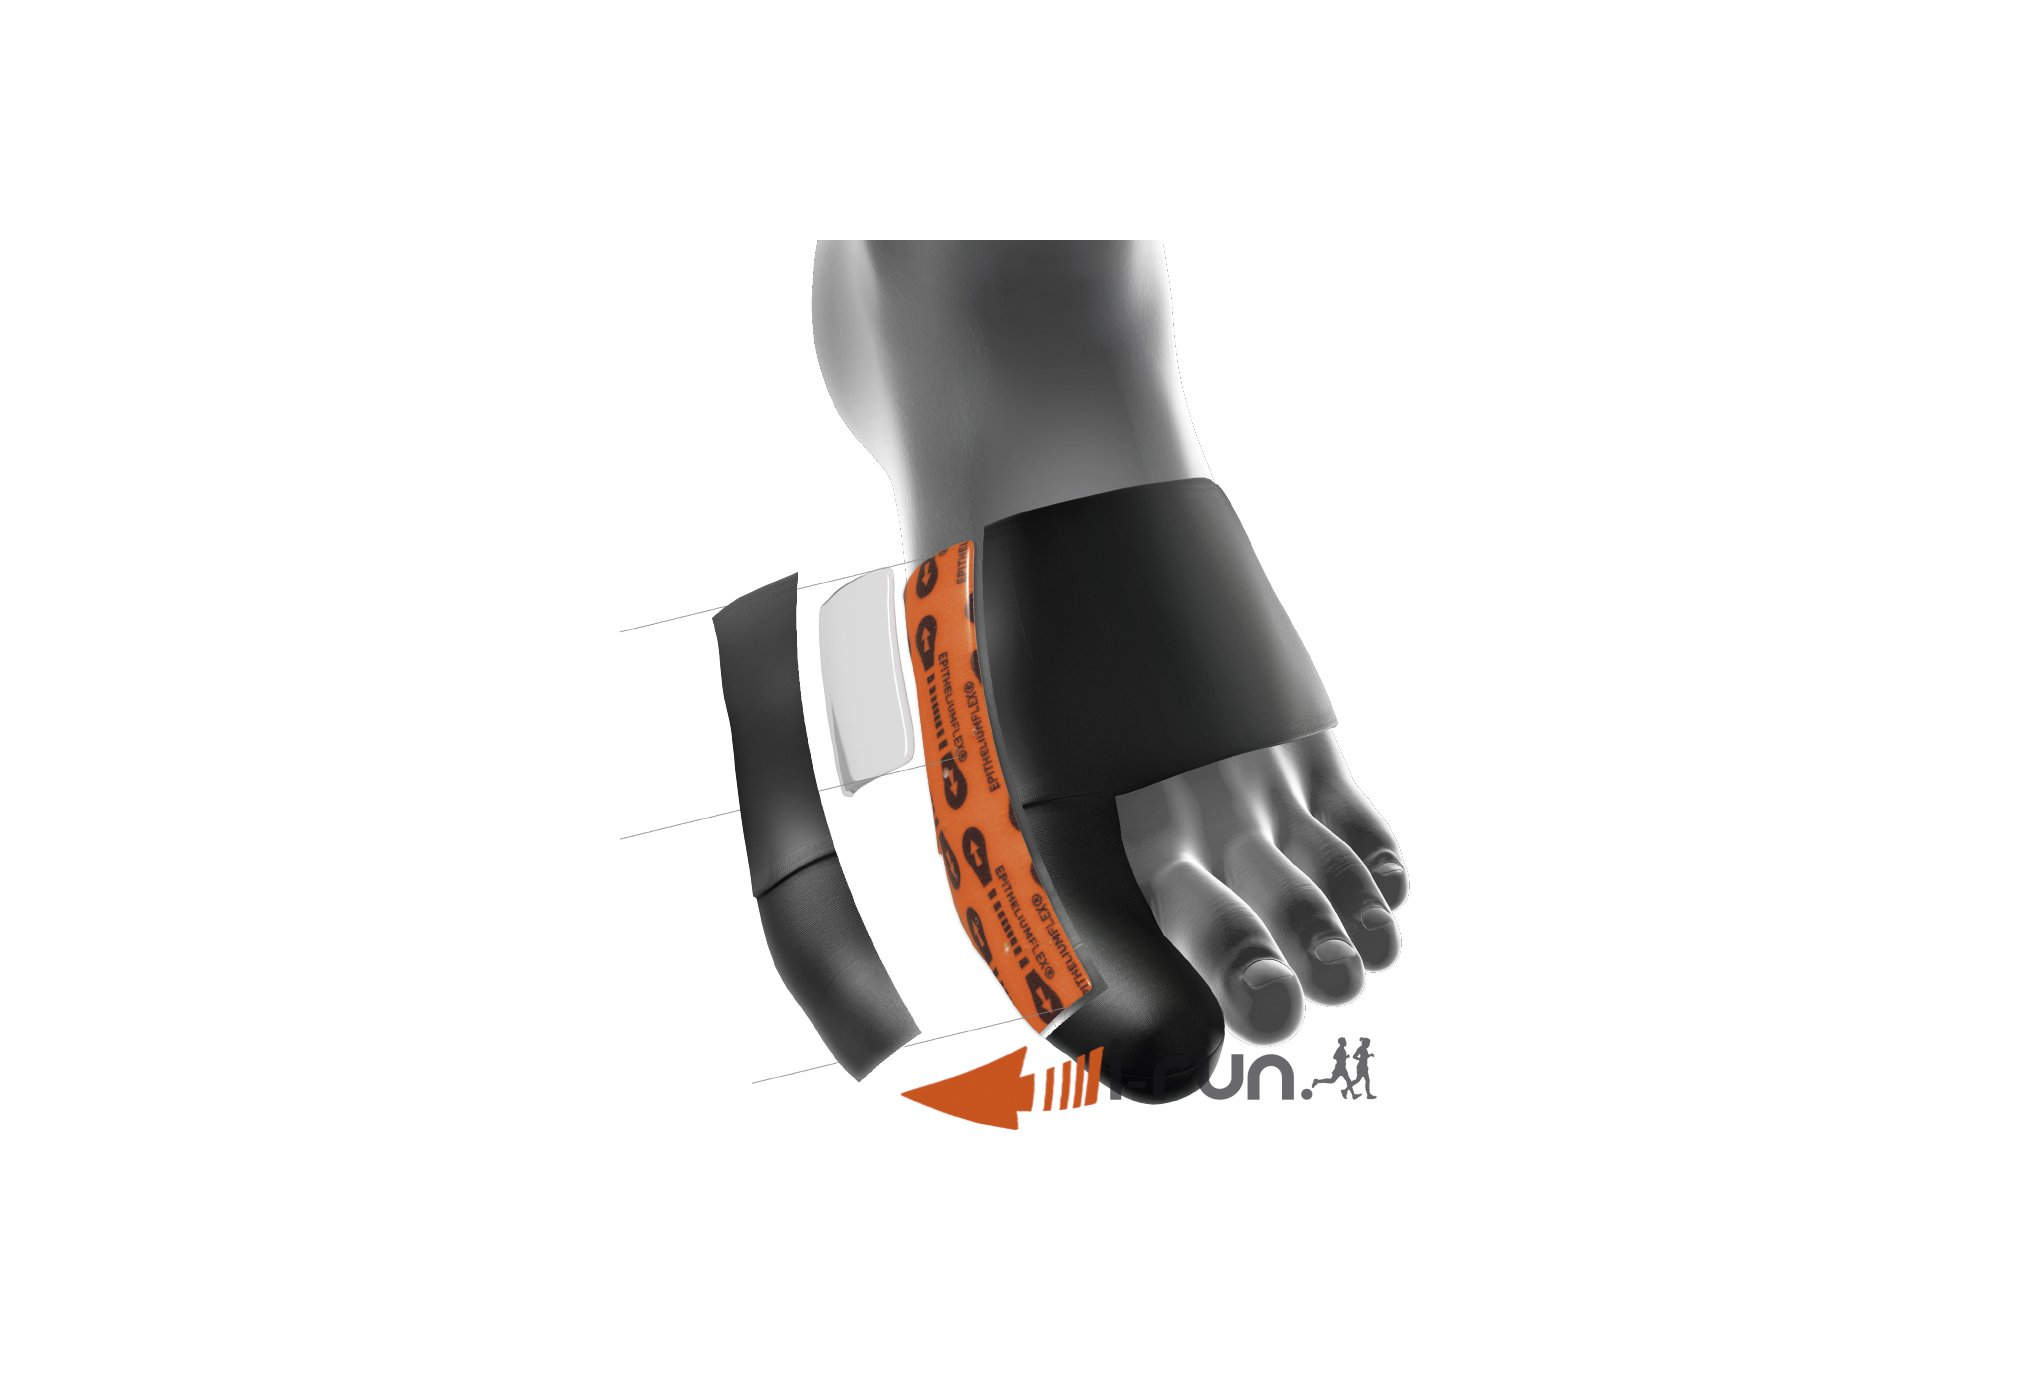 Epitact Orthèse Hallux Valgus Epithelium Flex 02 Protection musculaire & articulaire